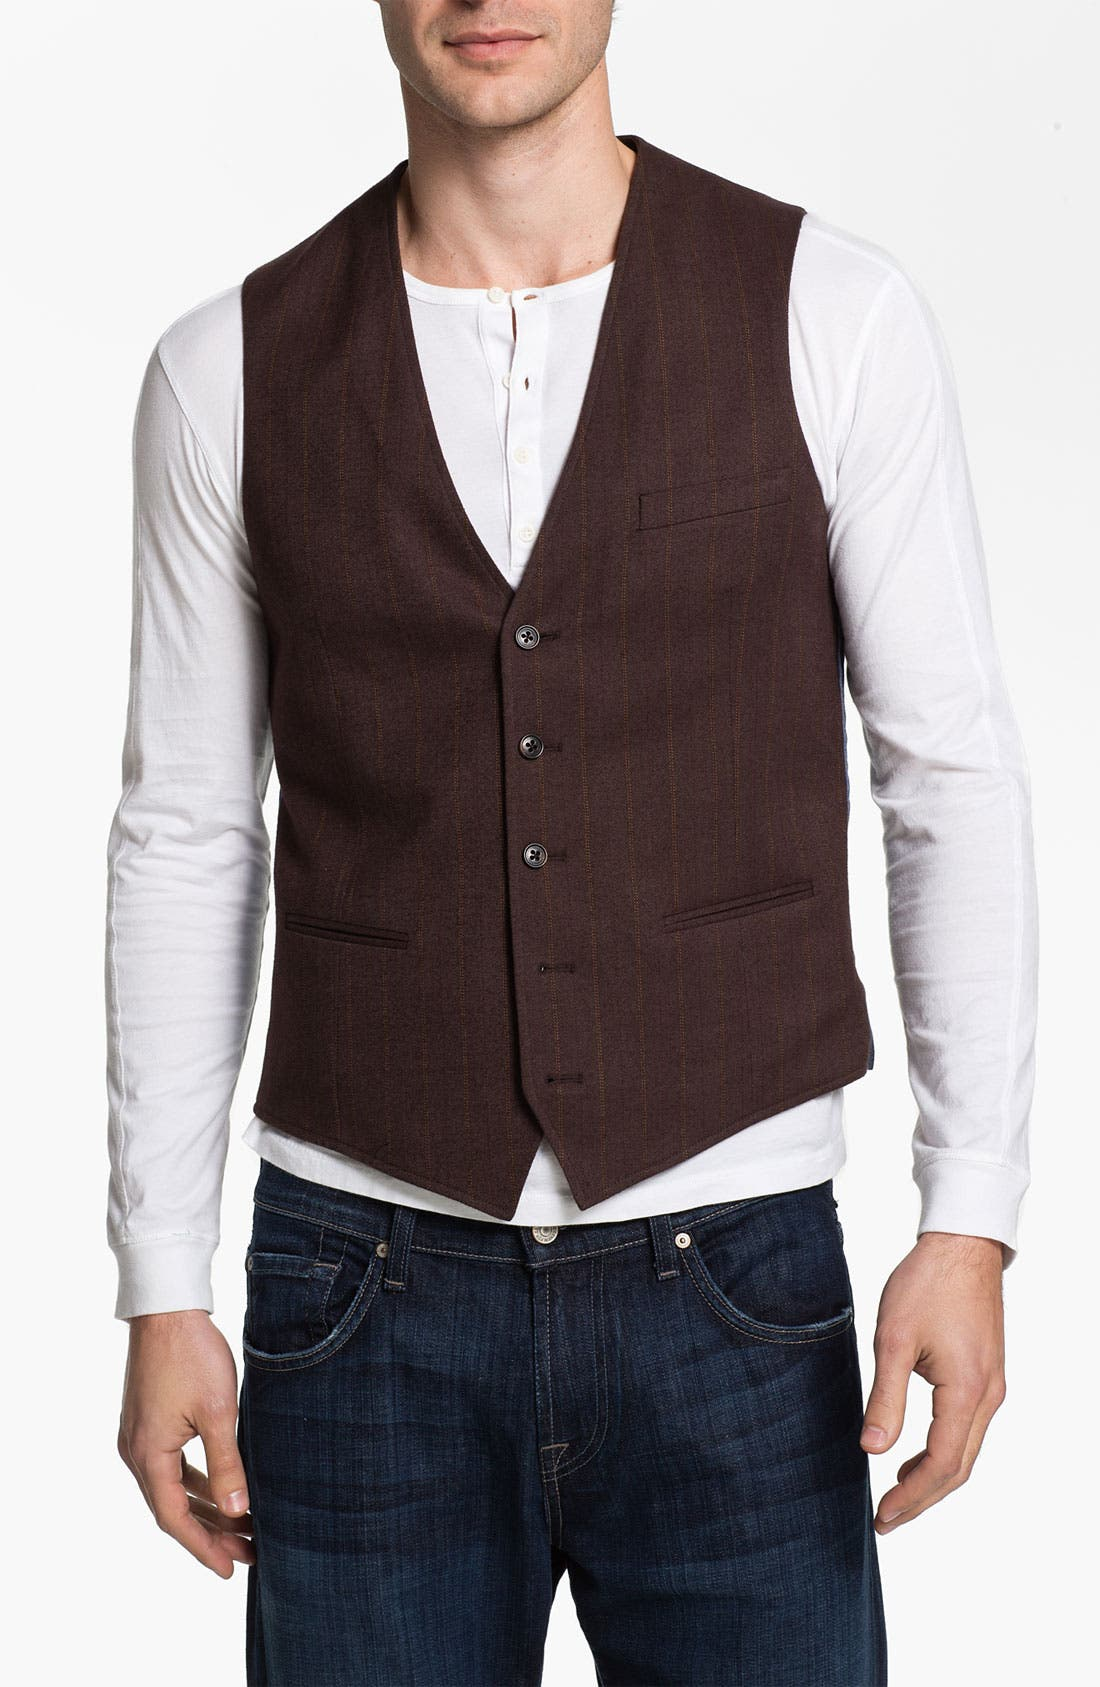 Alternate Image 1 Selected - 1901 Cotton Vest